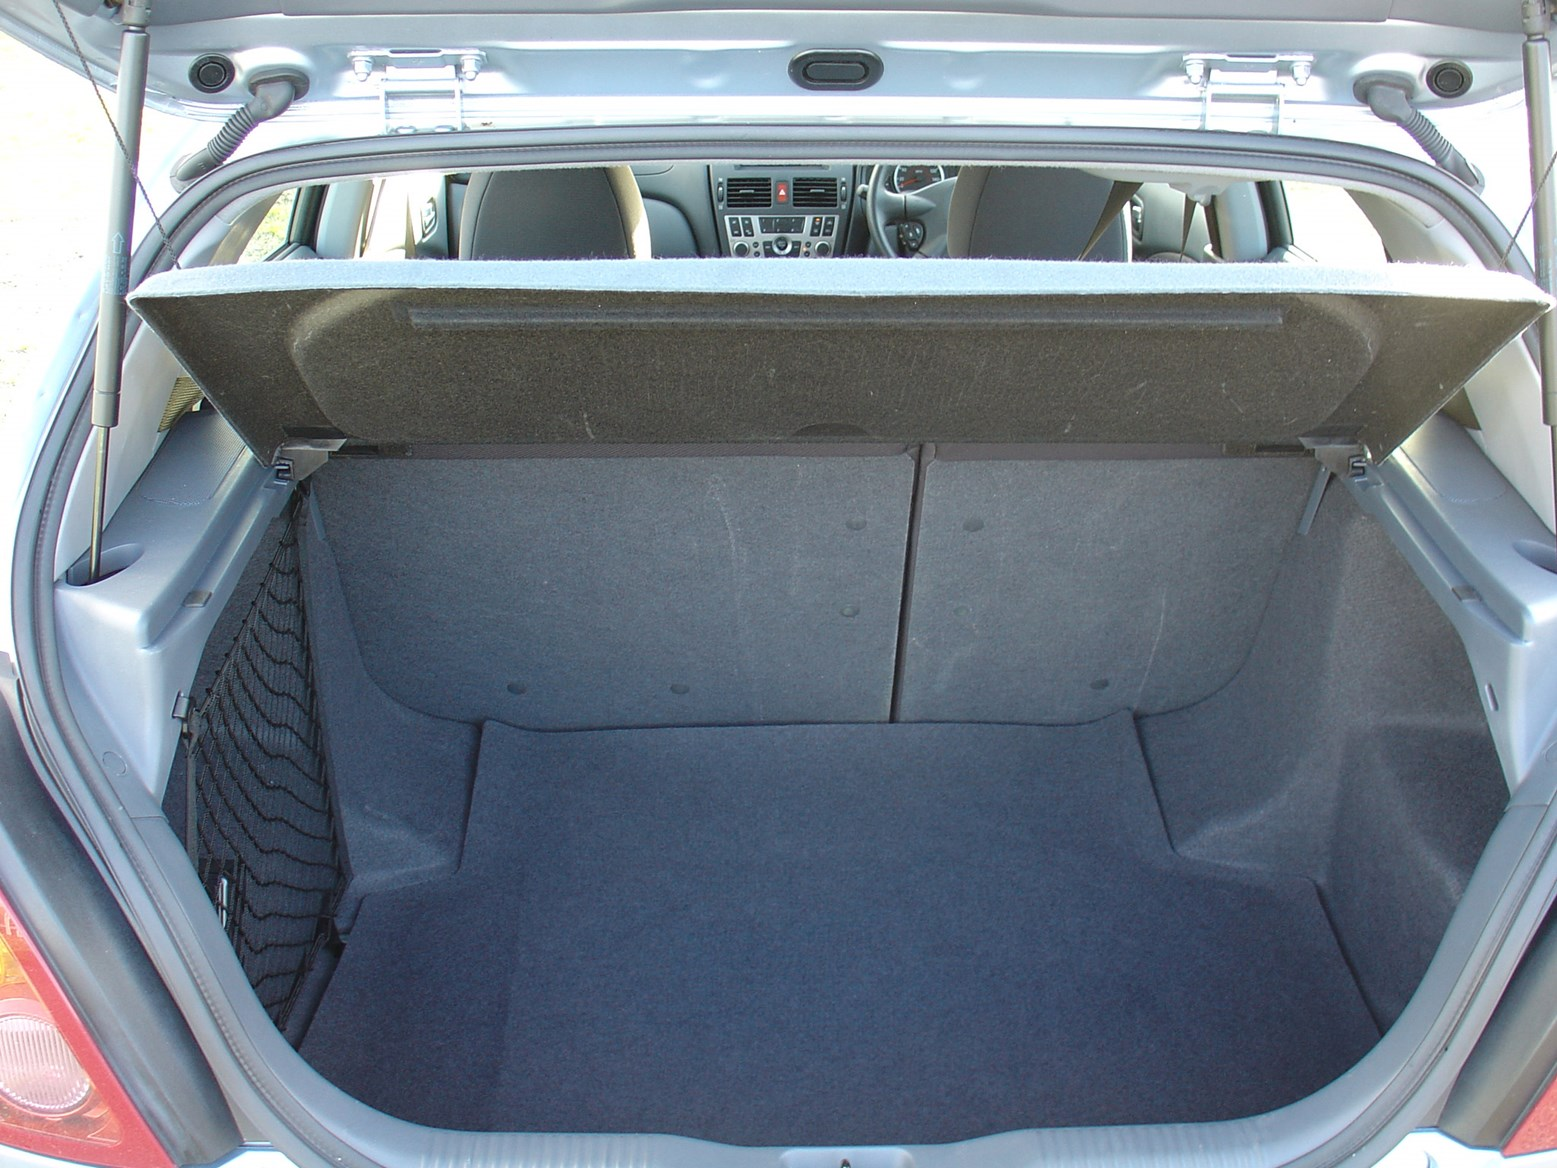 nissan almera hatchback (2000 - 2006) features, equipment and